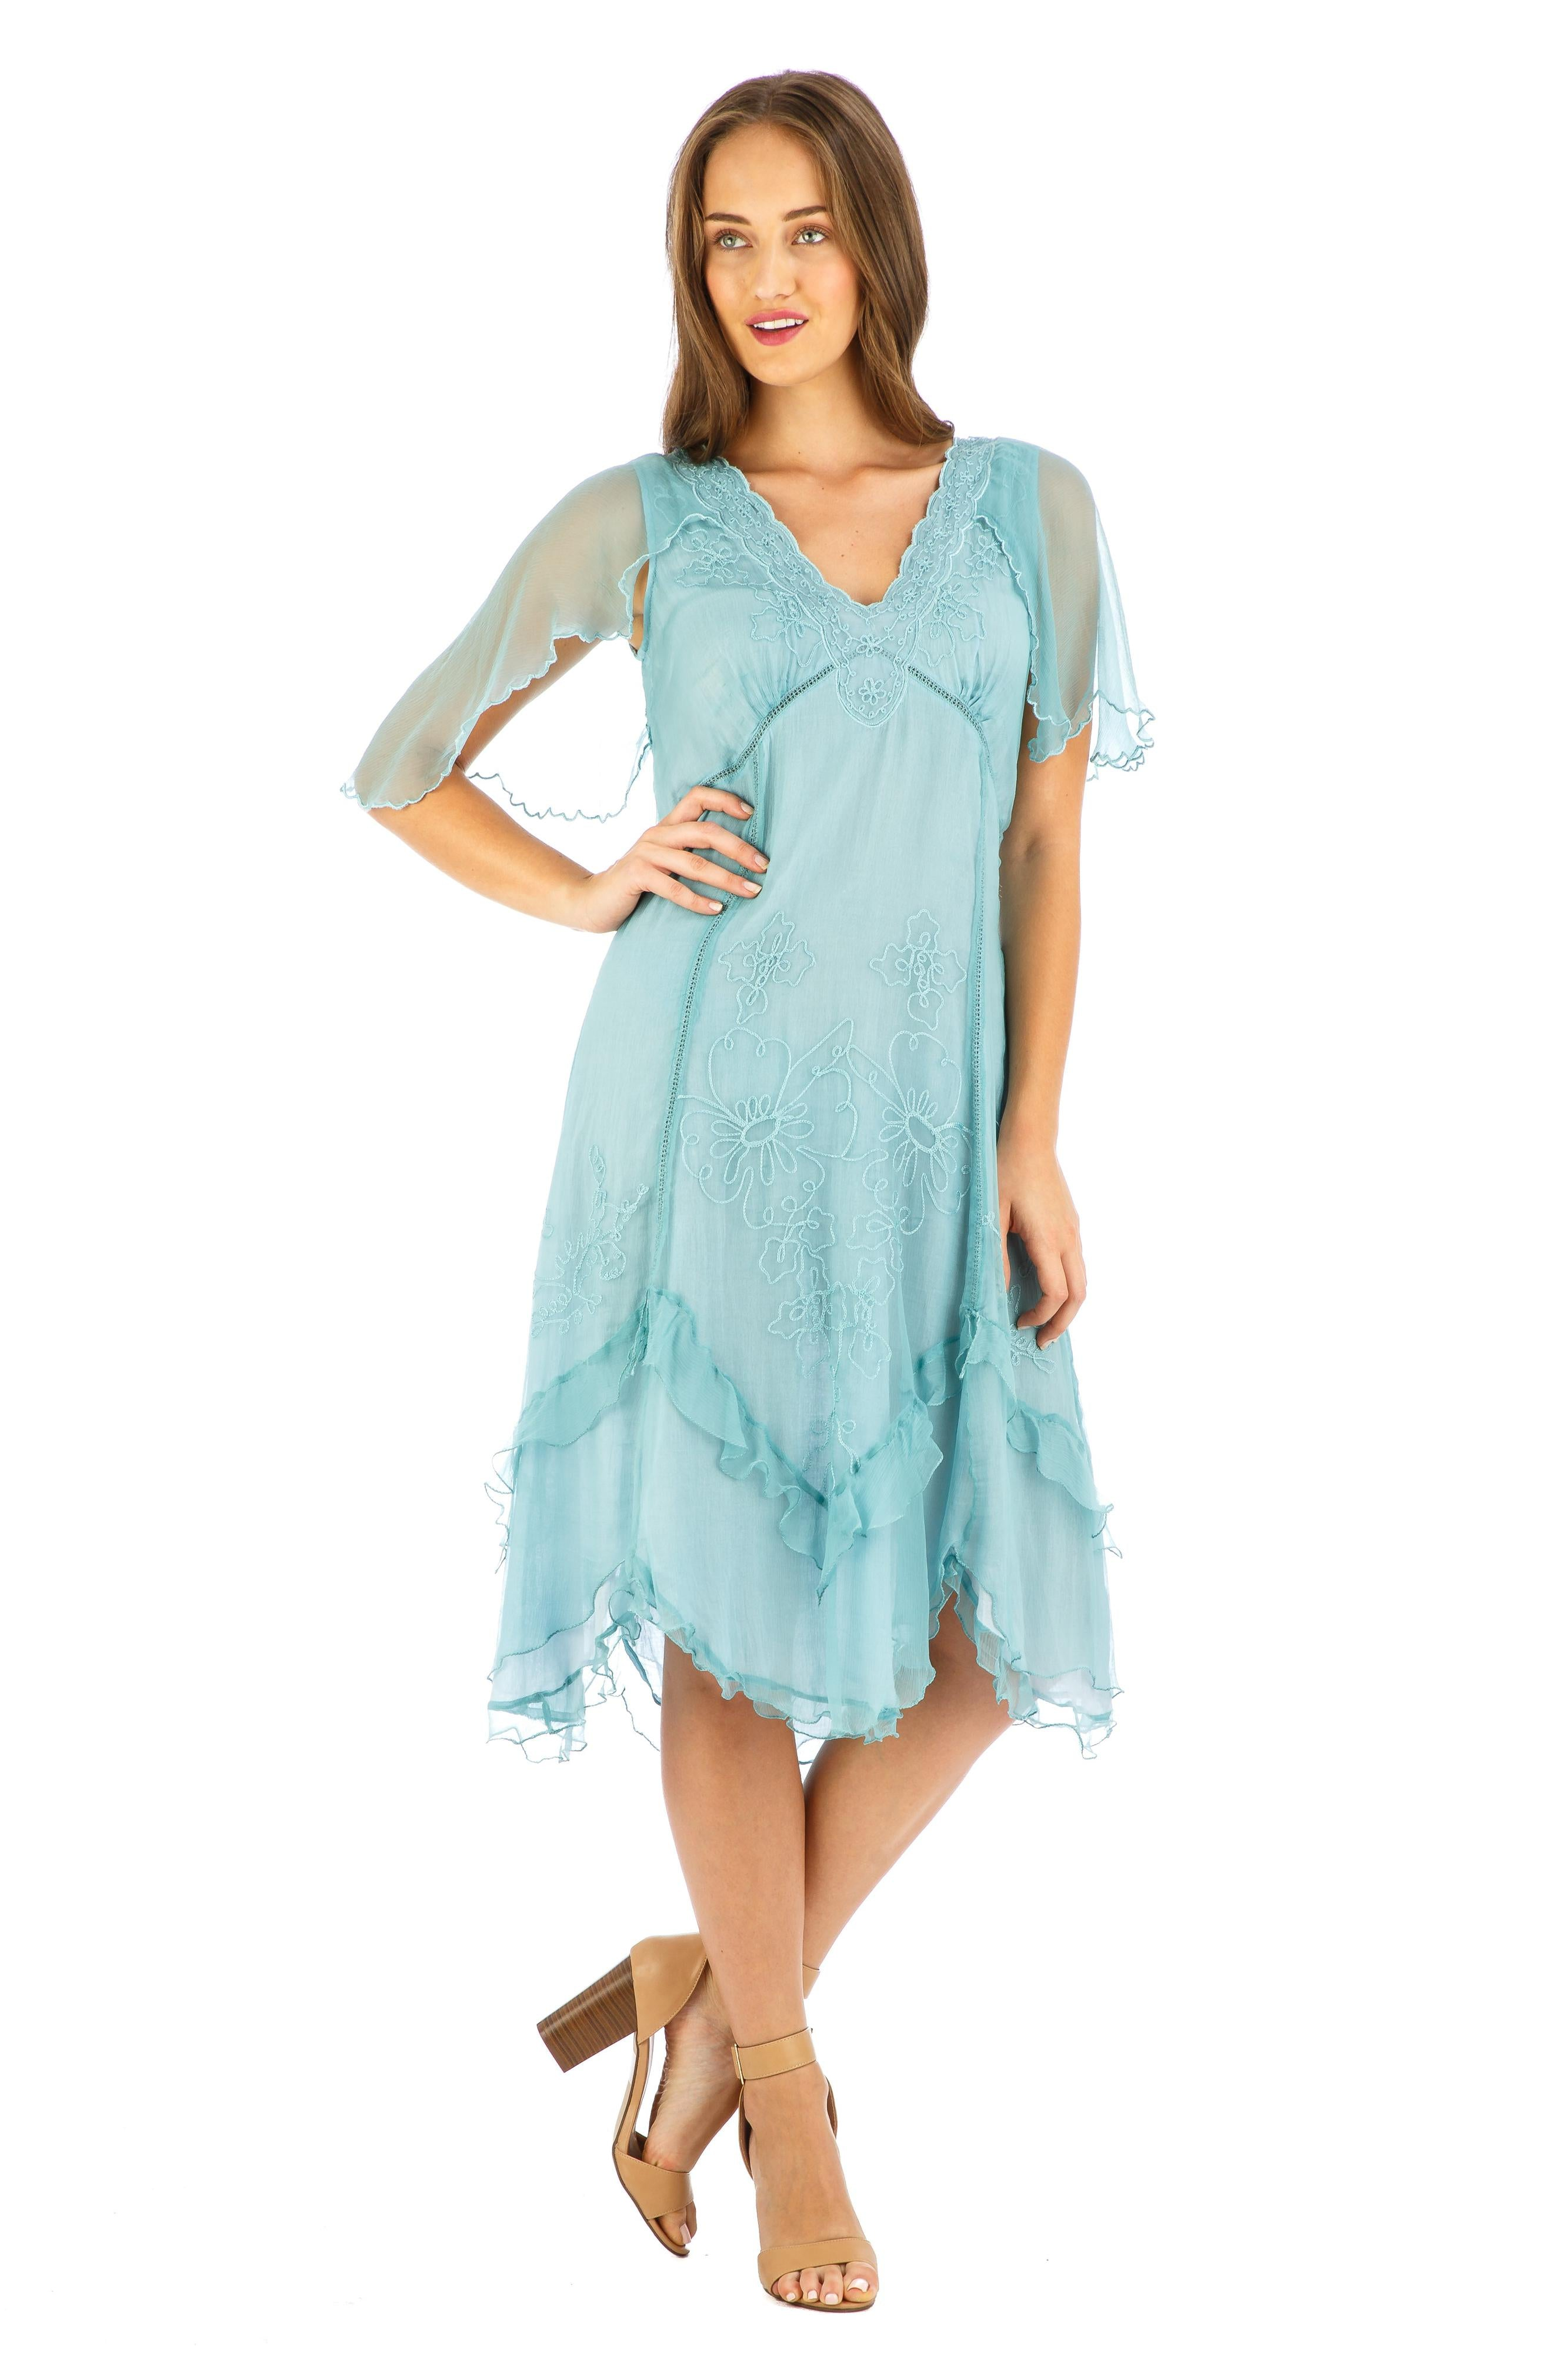 Great Gatsby Dress – Great Gatsby Dresses for Sale Jacqueline Vintage Style Party Dress in Turquoise by Nataya $194.00 AT vintagedancer.com